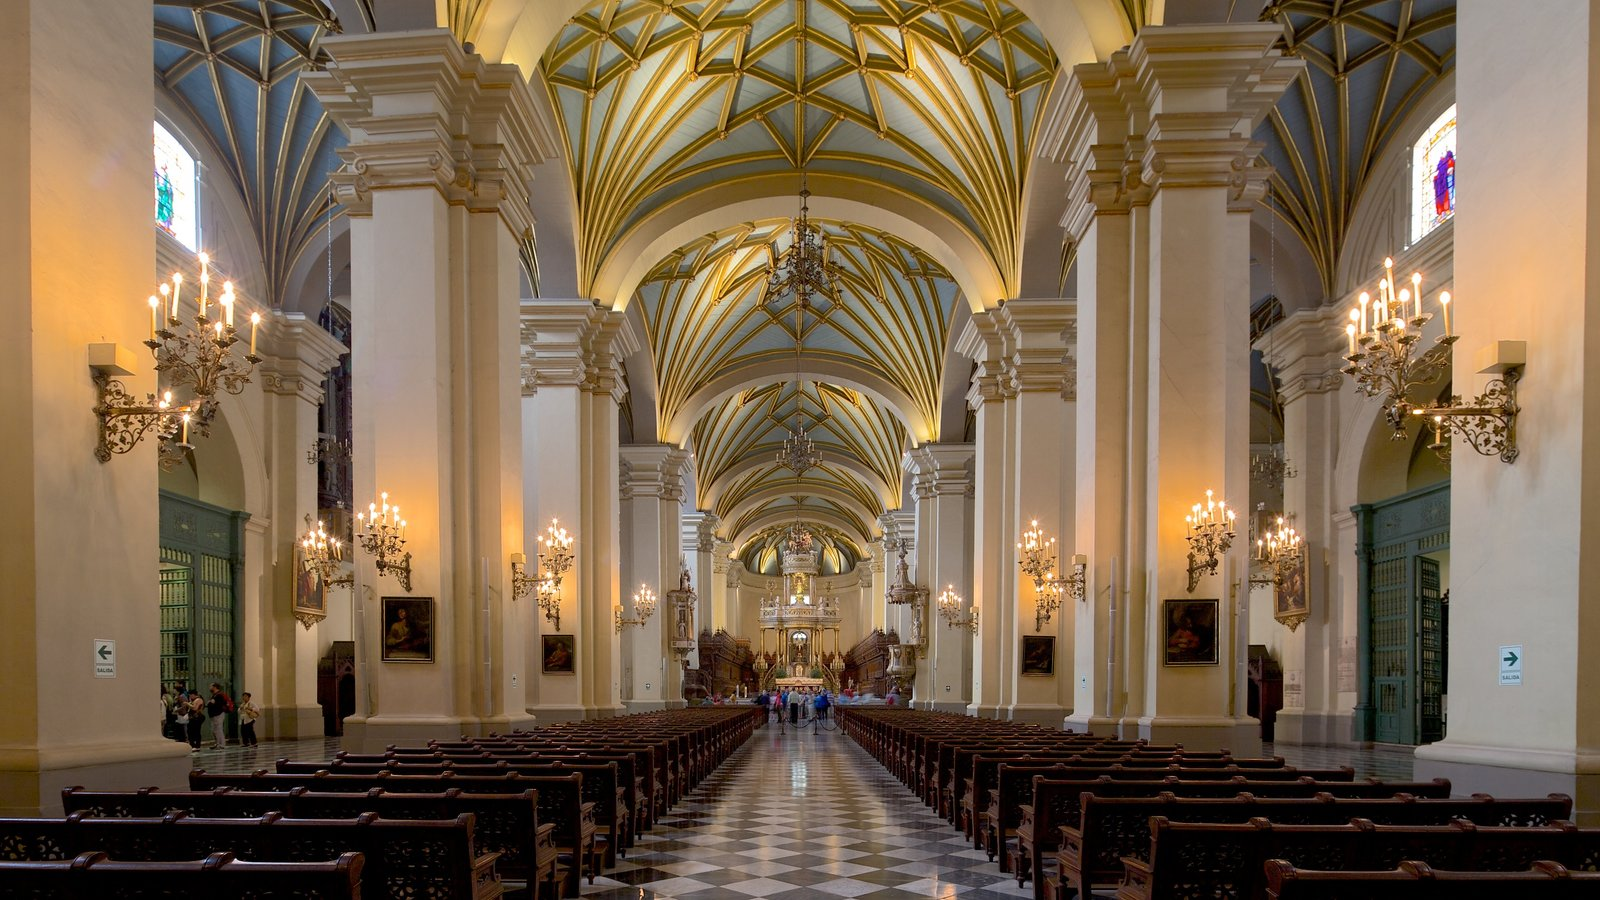 Lima which includes interior views, a church or cathedral and religious aspects